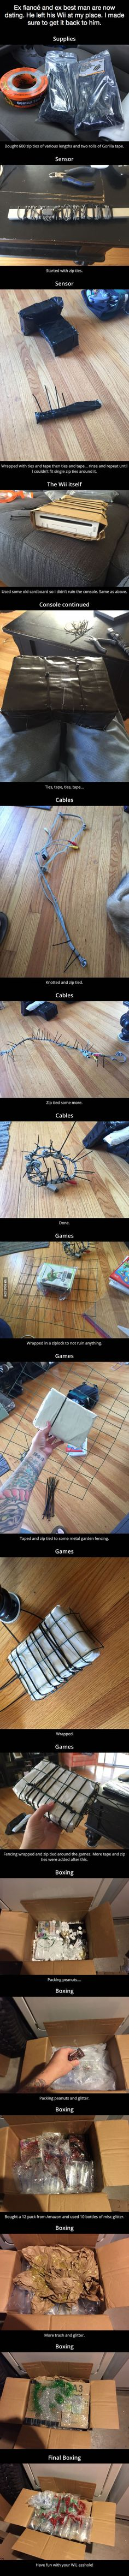 This guy's fiancé cheated on him with his best friend, so he pulled a Wii Revenge